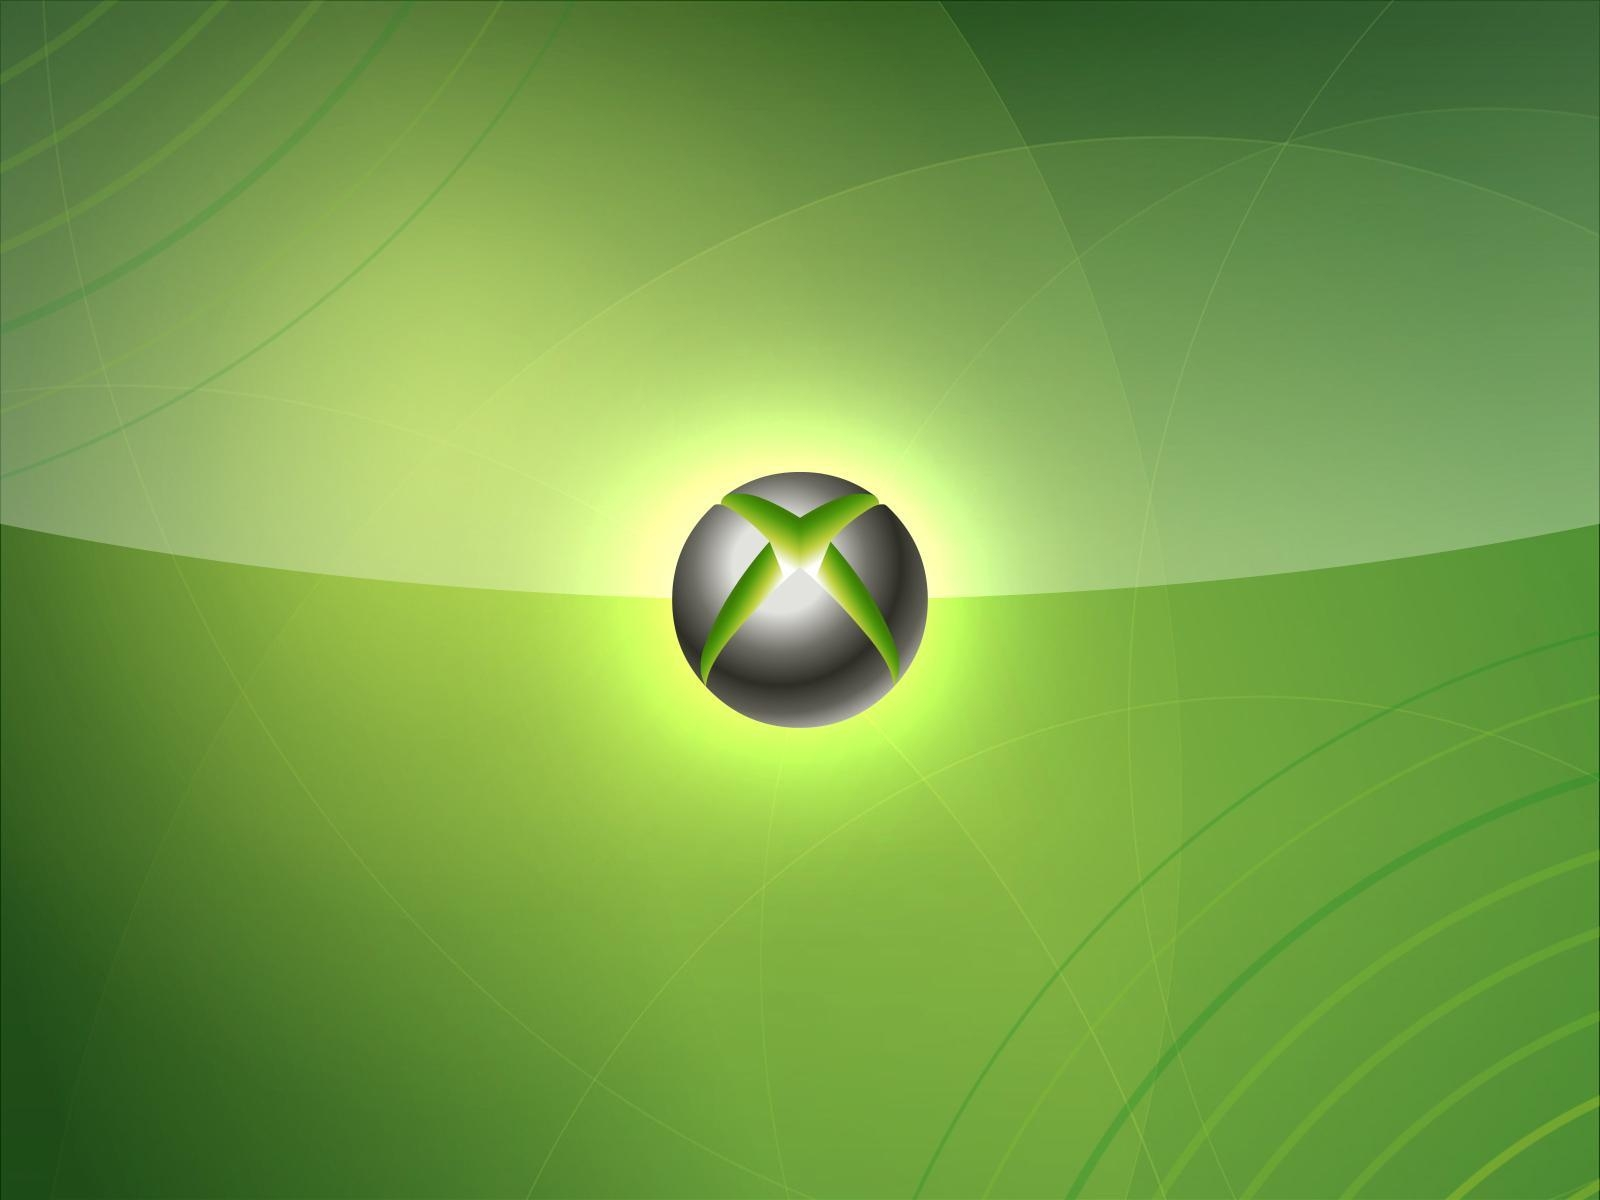 xbox_720_guide_logo_wallpaper